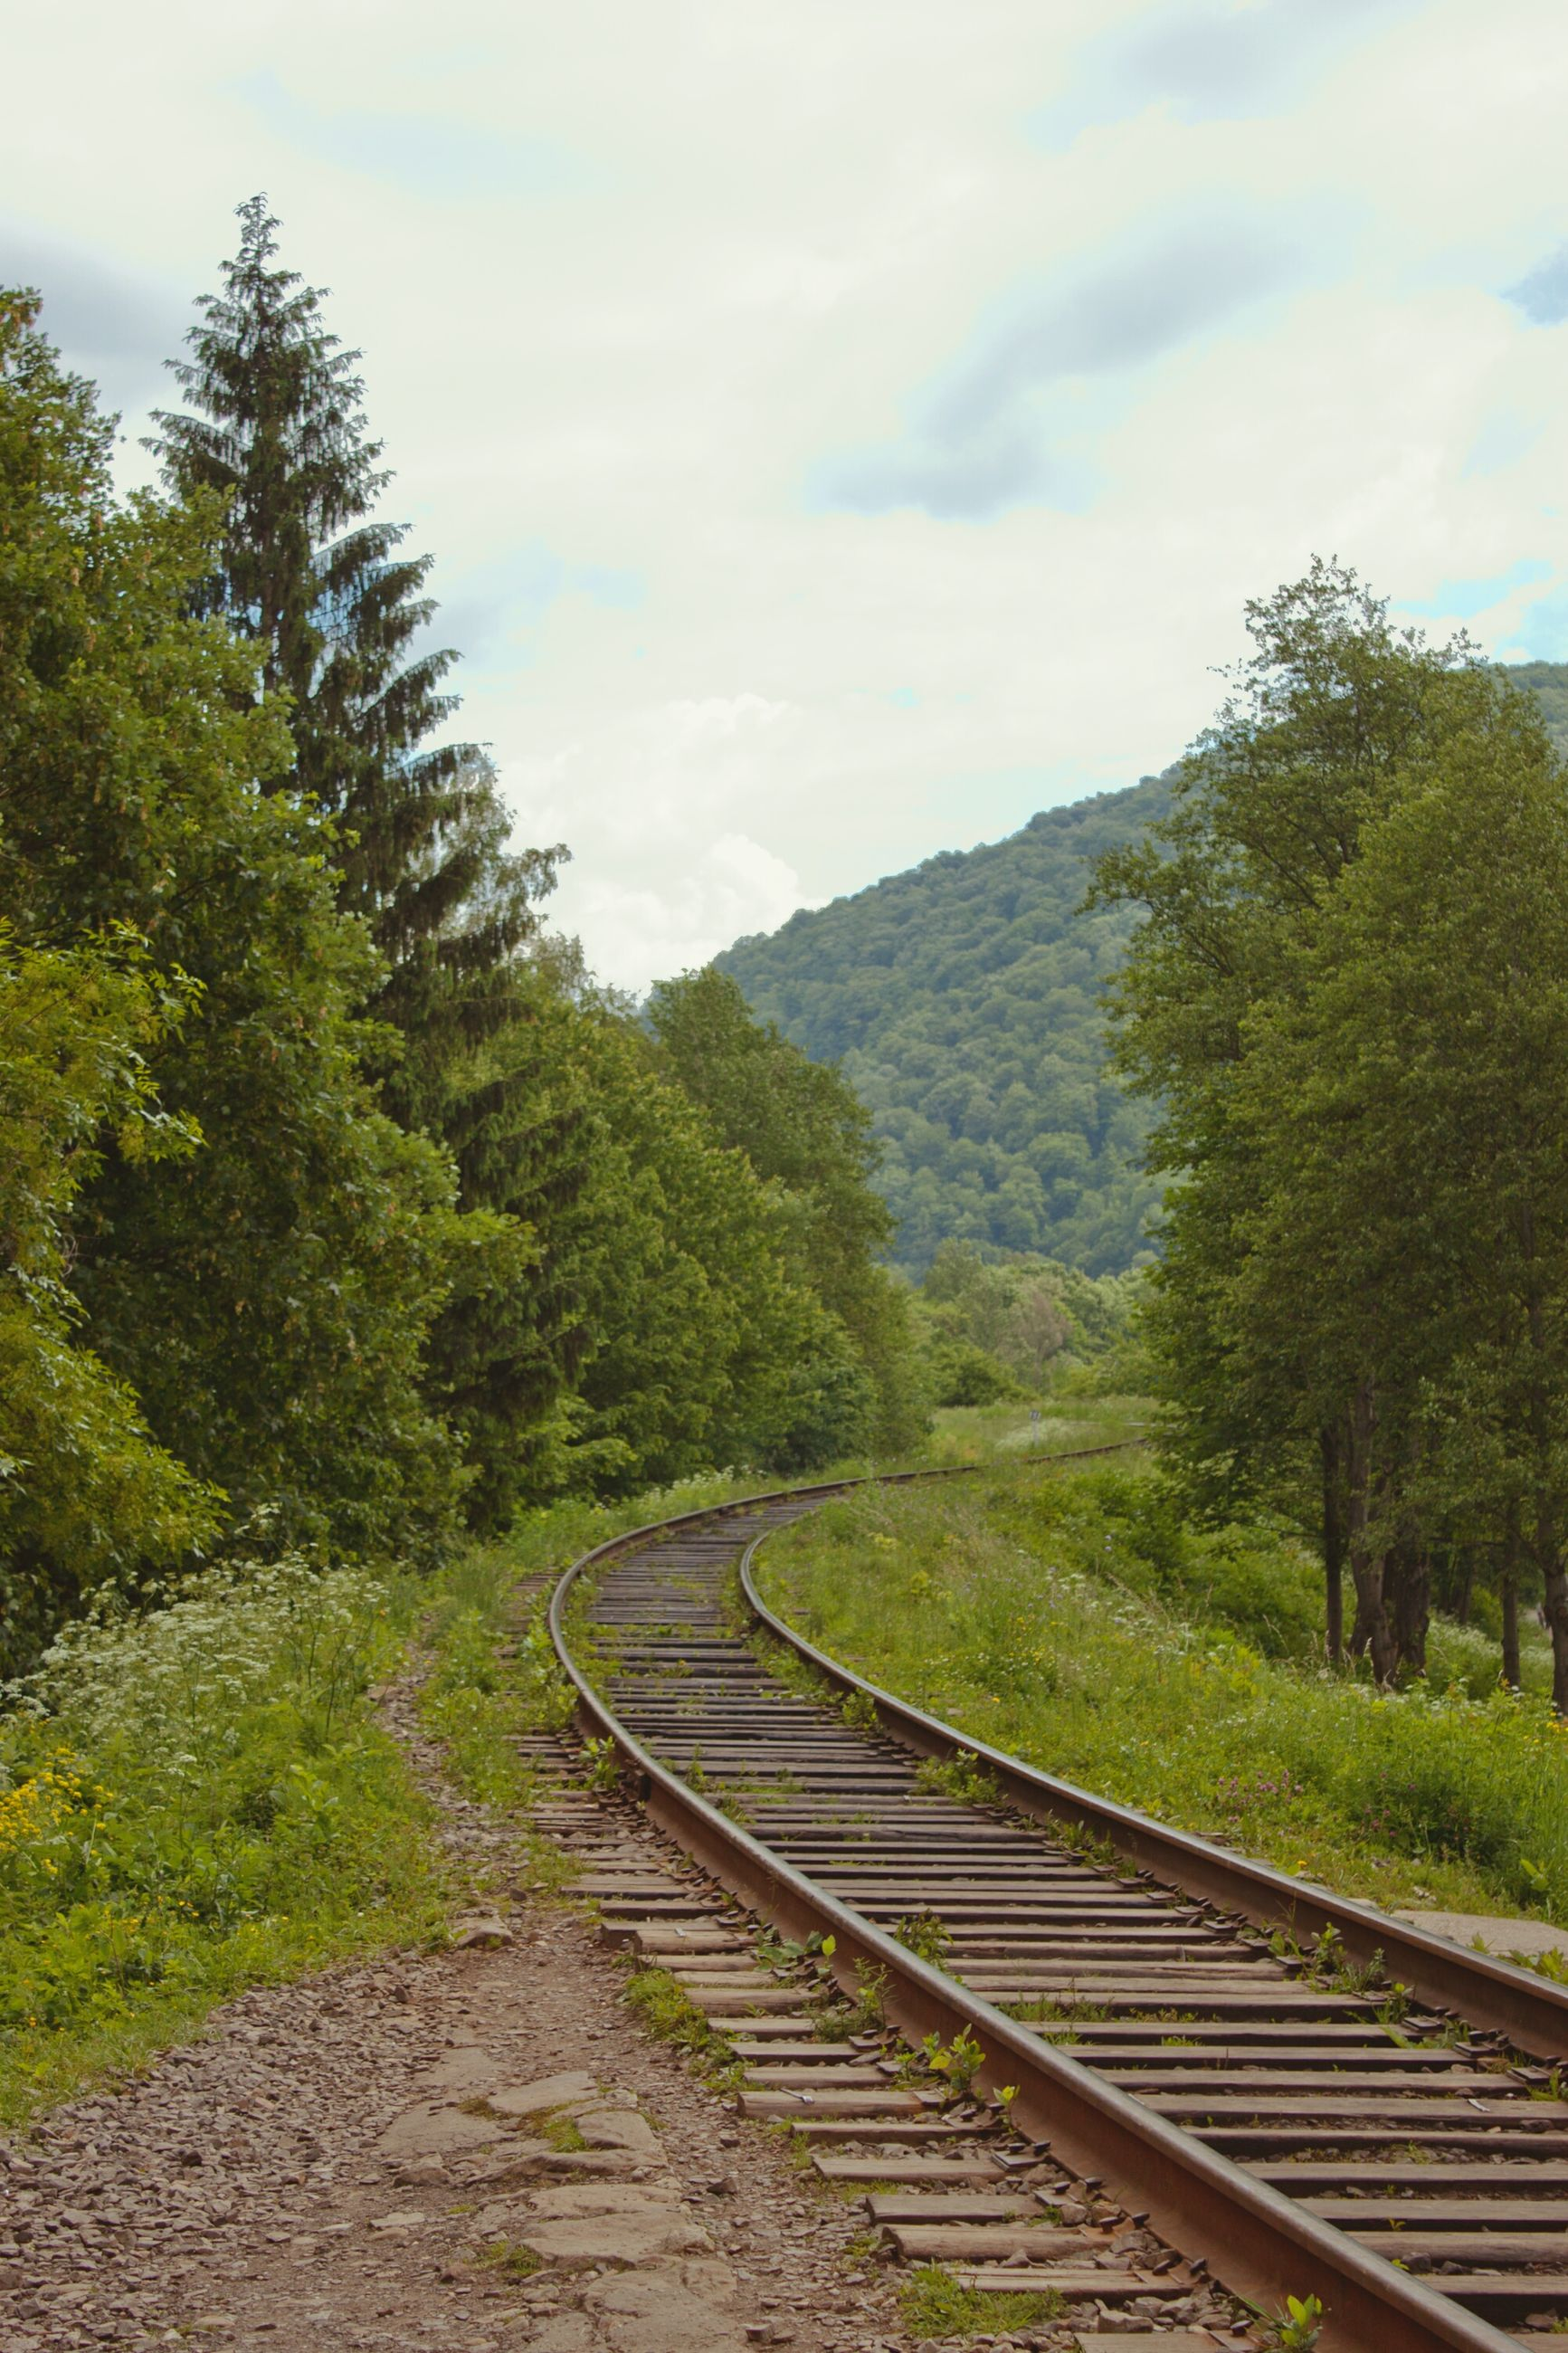 the way forward, tree, sky, tranquility, green color, railroad track, tranquil scene, nature, growth, diminishing perspective, mountain, landscape, railing, vanishing point, cloud - sky, beauty in nature, scenics, rail transportation, day, grass